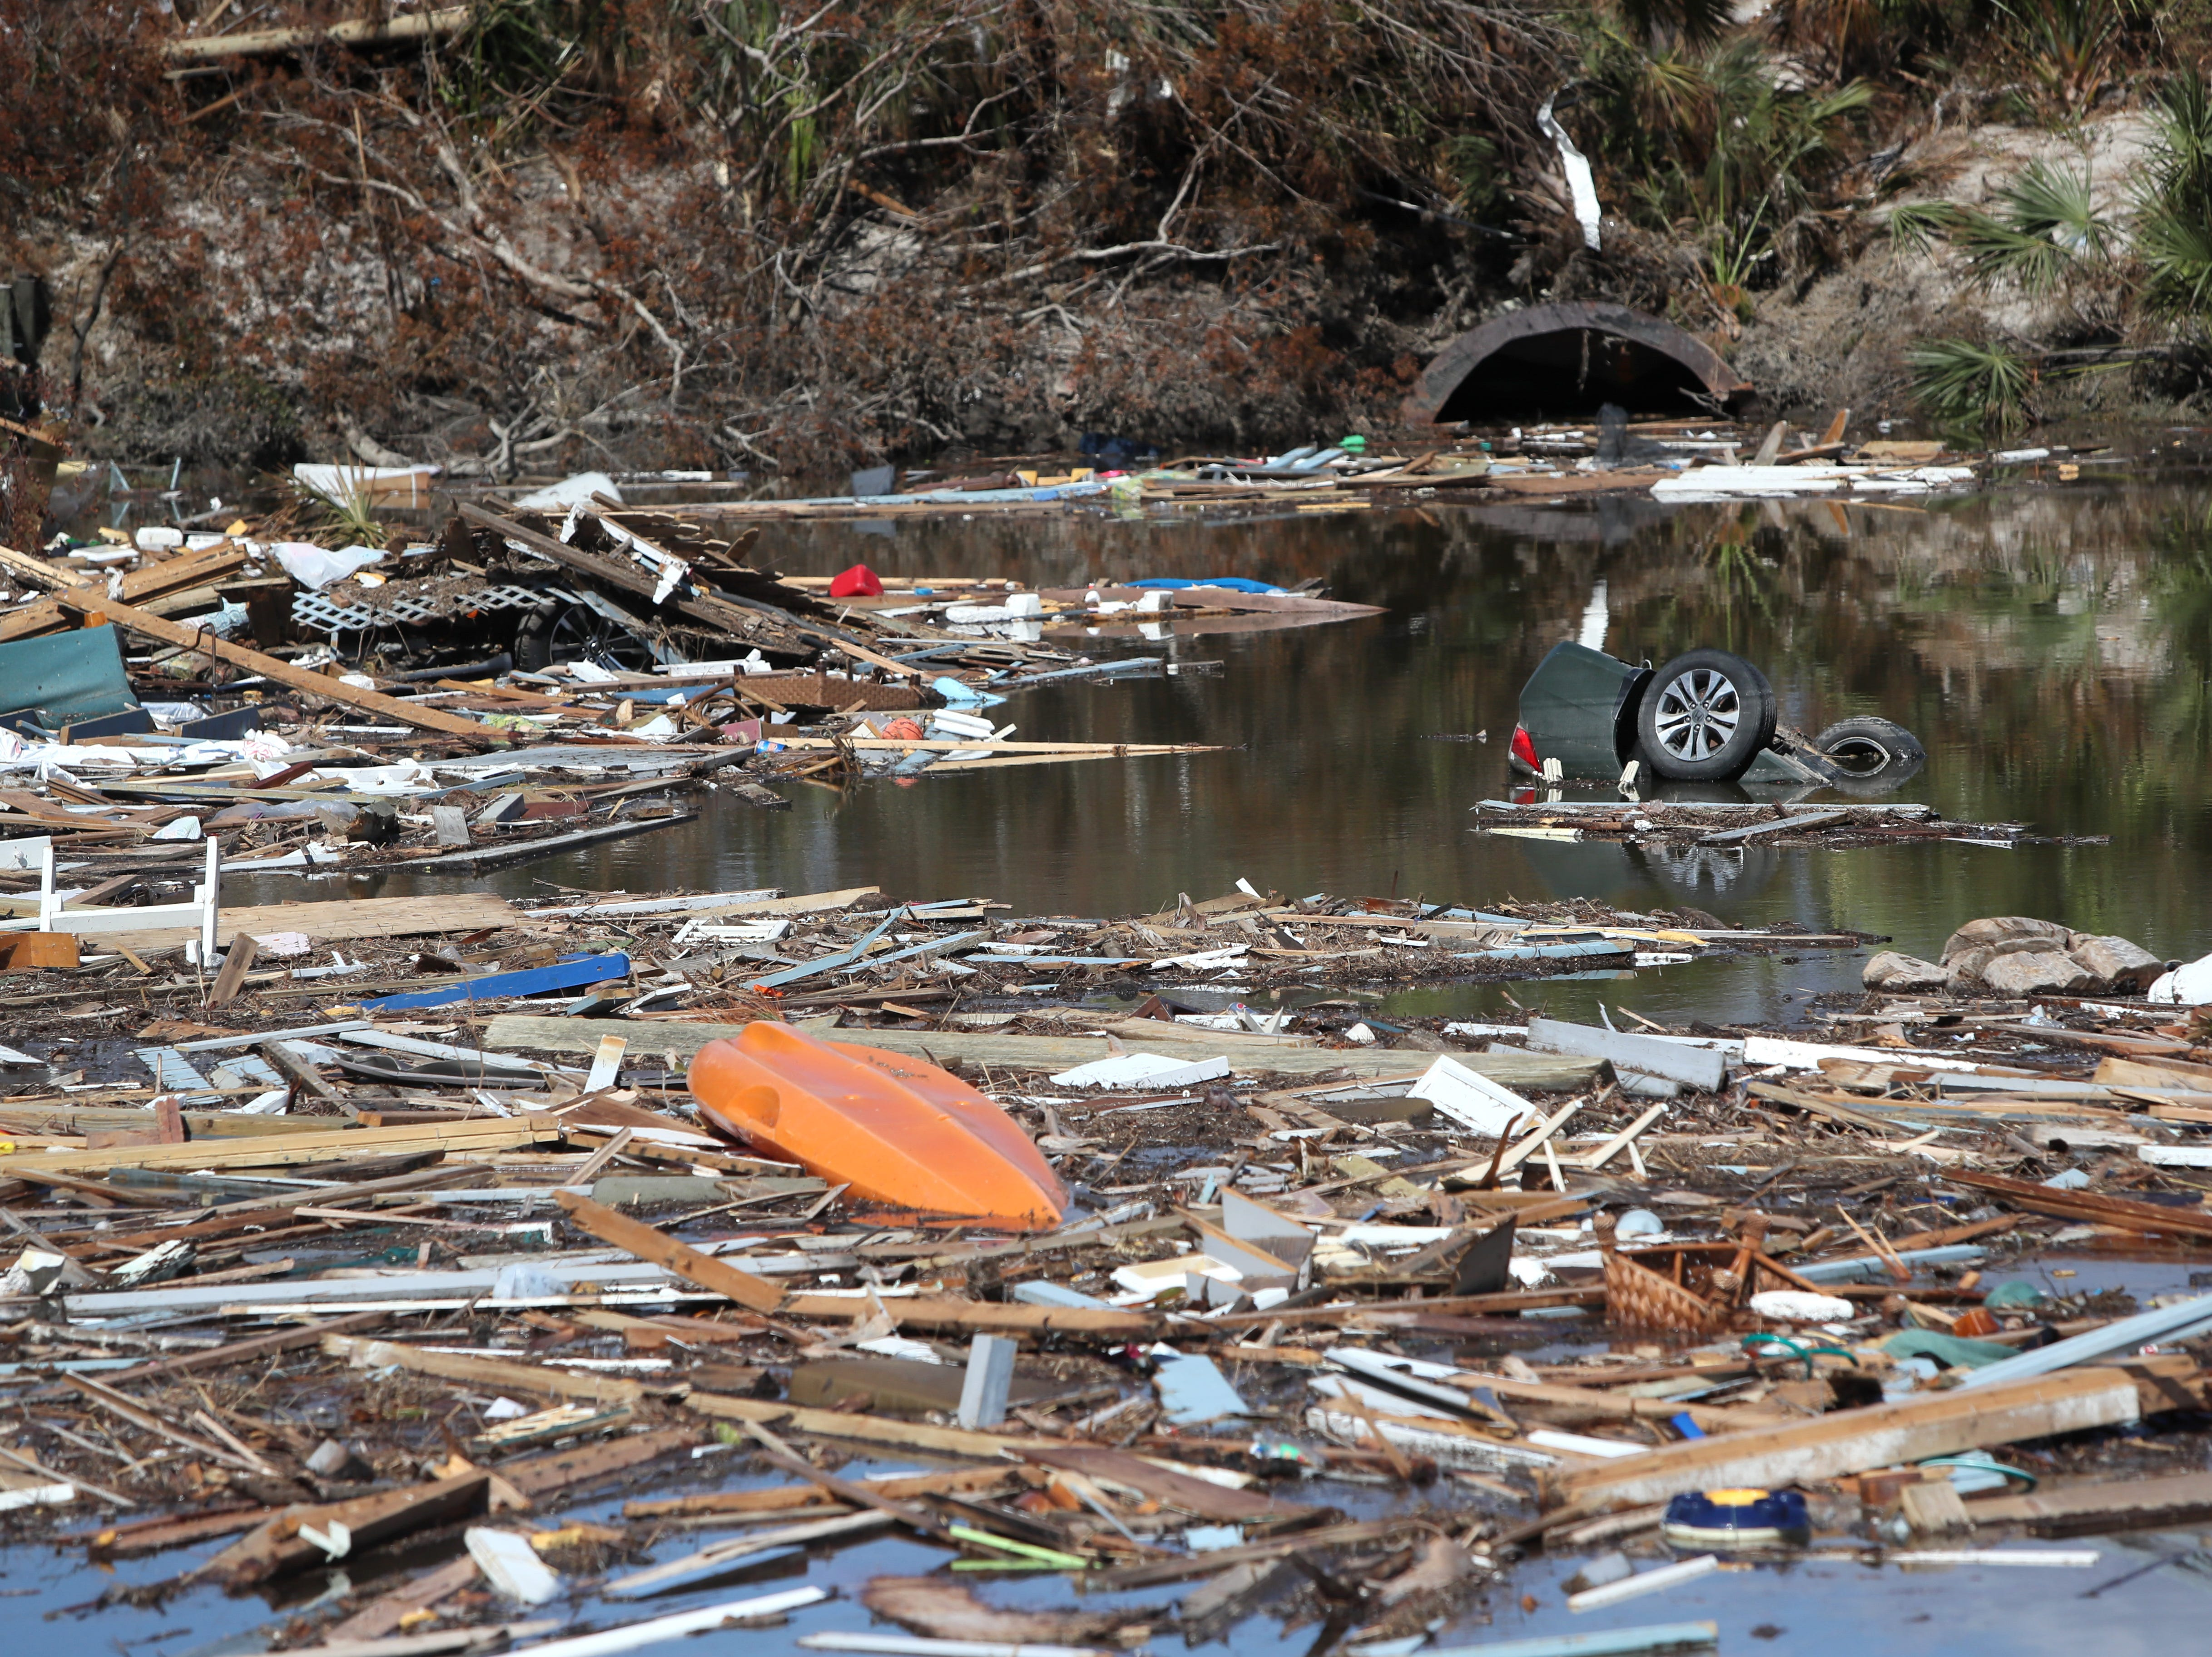 Scraps of homes and debris fill the waterways in Mexico Beach on Wednesday, Oct. 17, 2018, one week after Hurricane Michael ripped through the coastal Florida town.